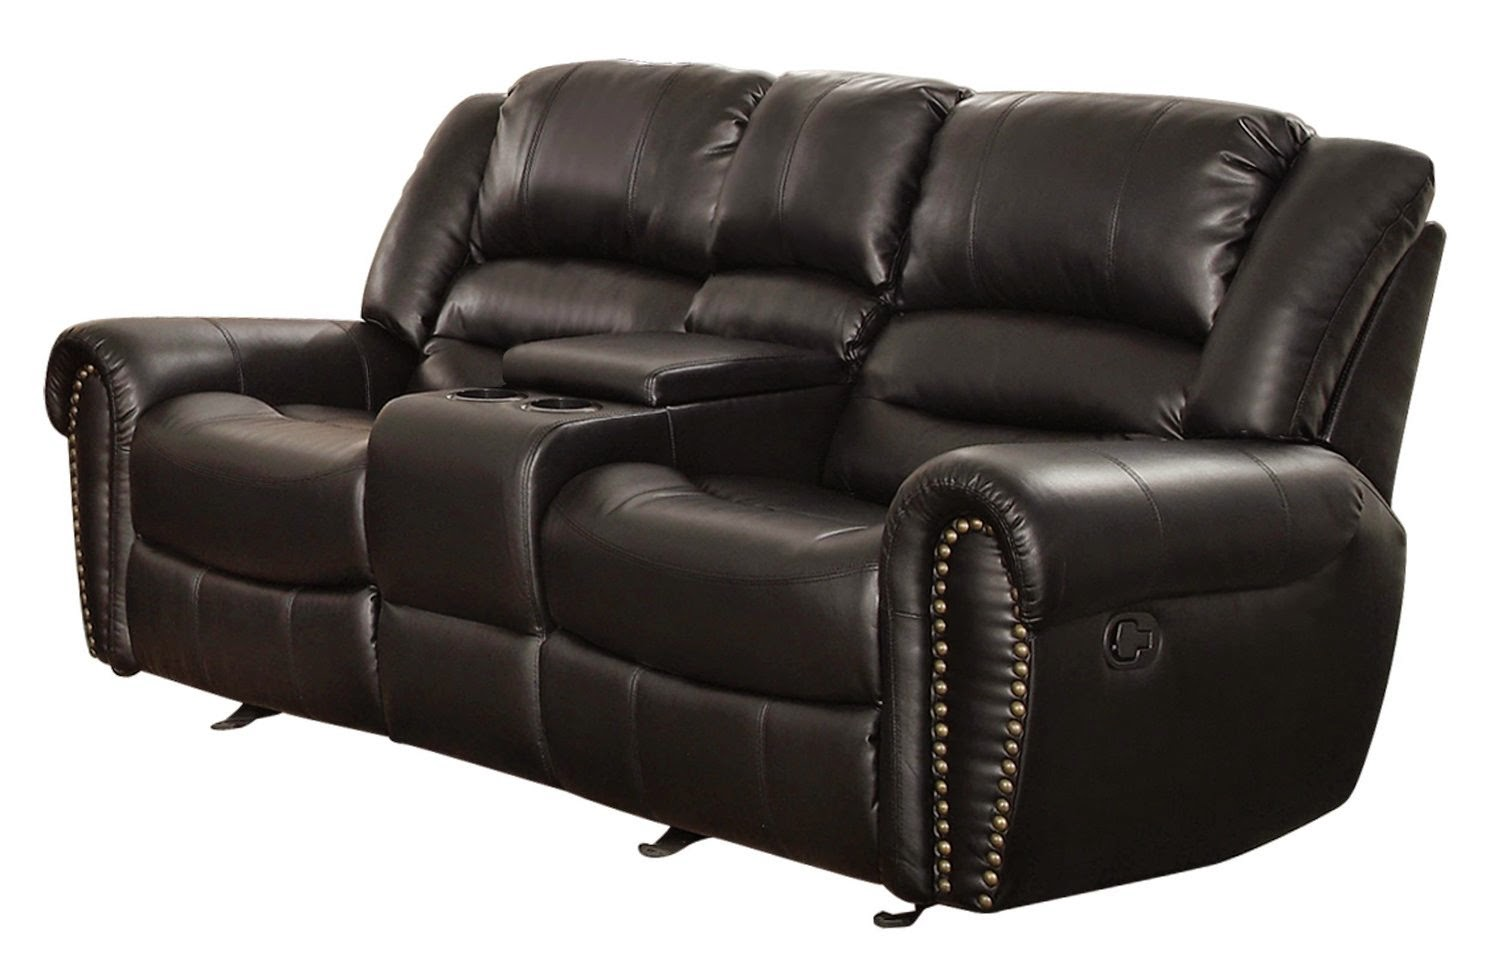 sofa recliner reviews black leather 2 seater recliner sofa. Black Bedroom Furniture Sets. Home Design Ideas